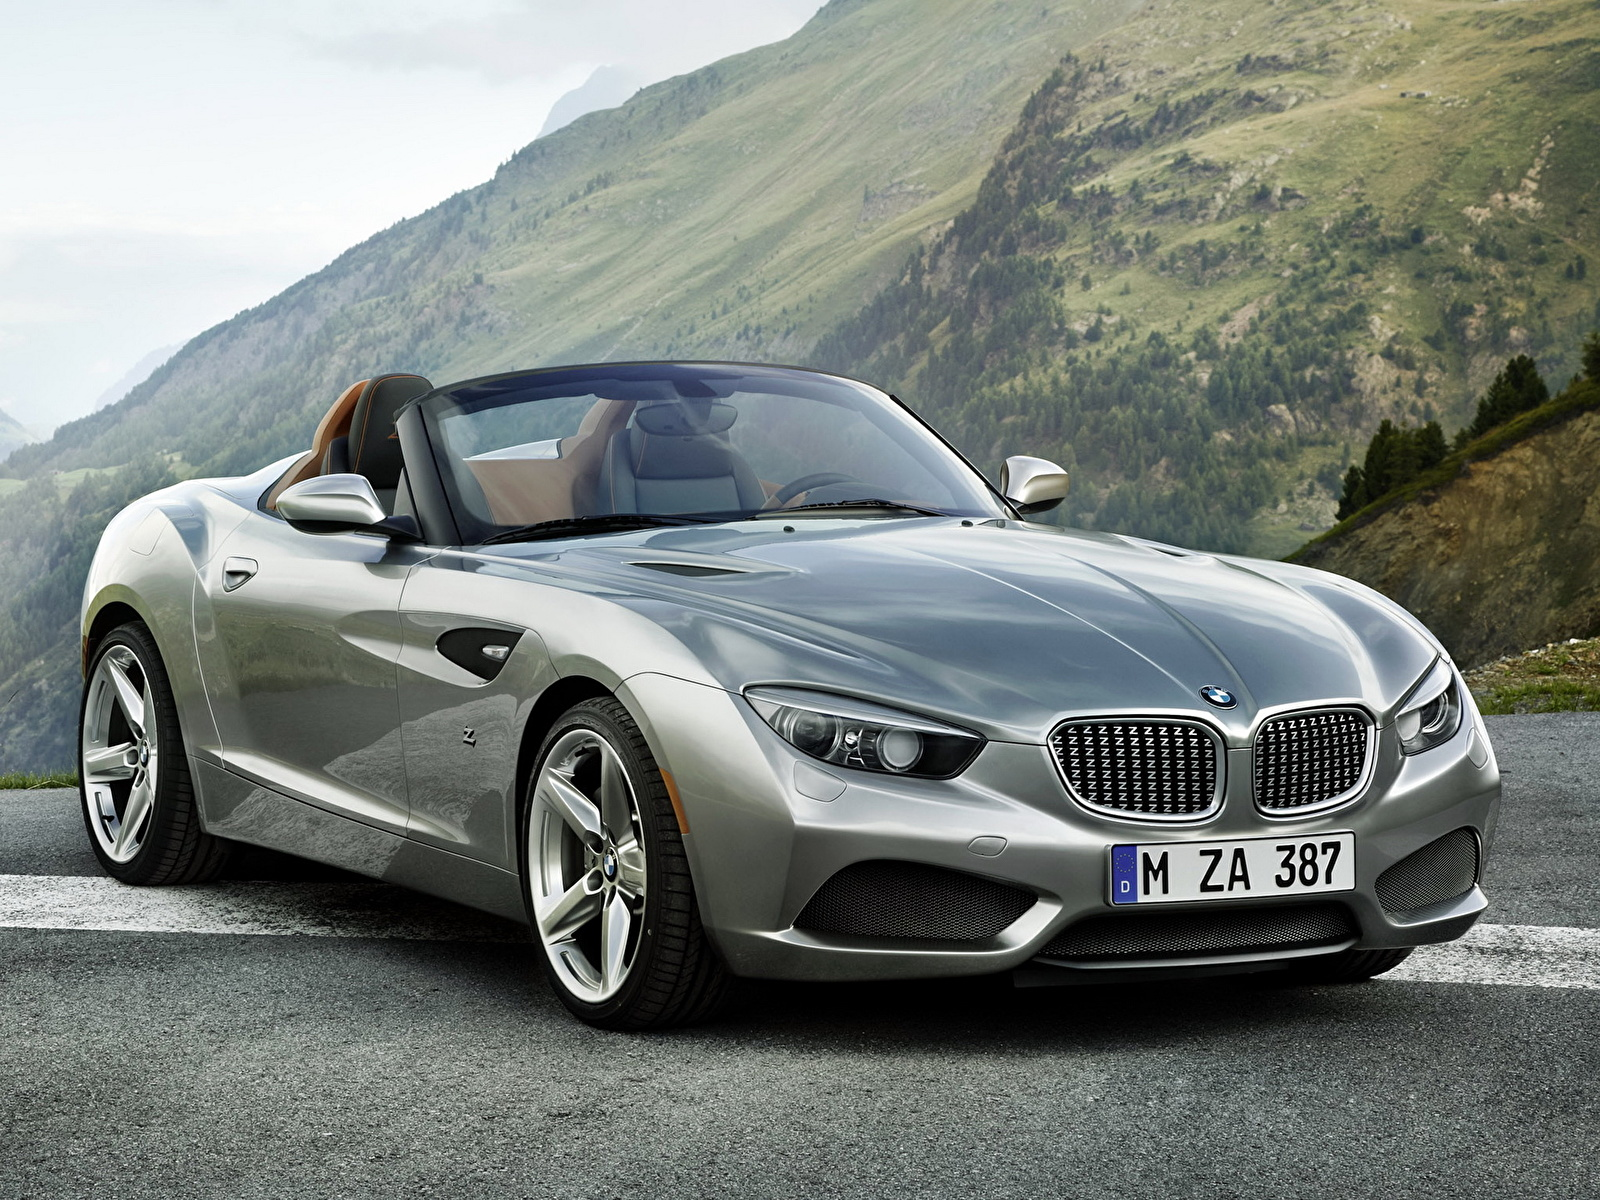 Обои для рабочего стола BMW zagato roadster Родстер авто 1600x1200 БМВ машина машины автомобиль Автомобили